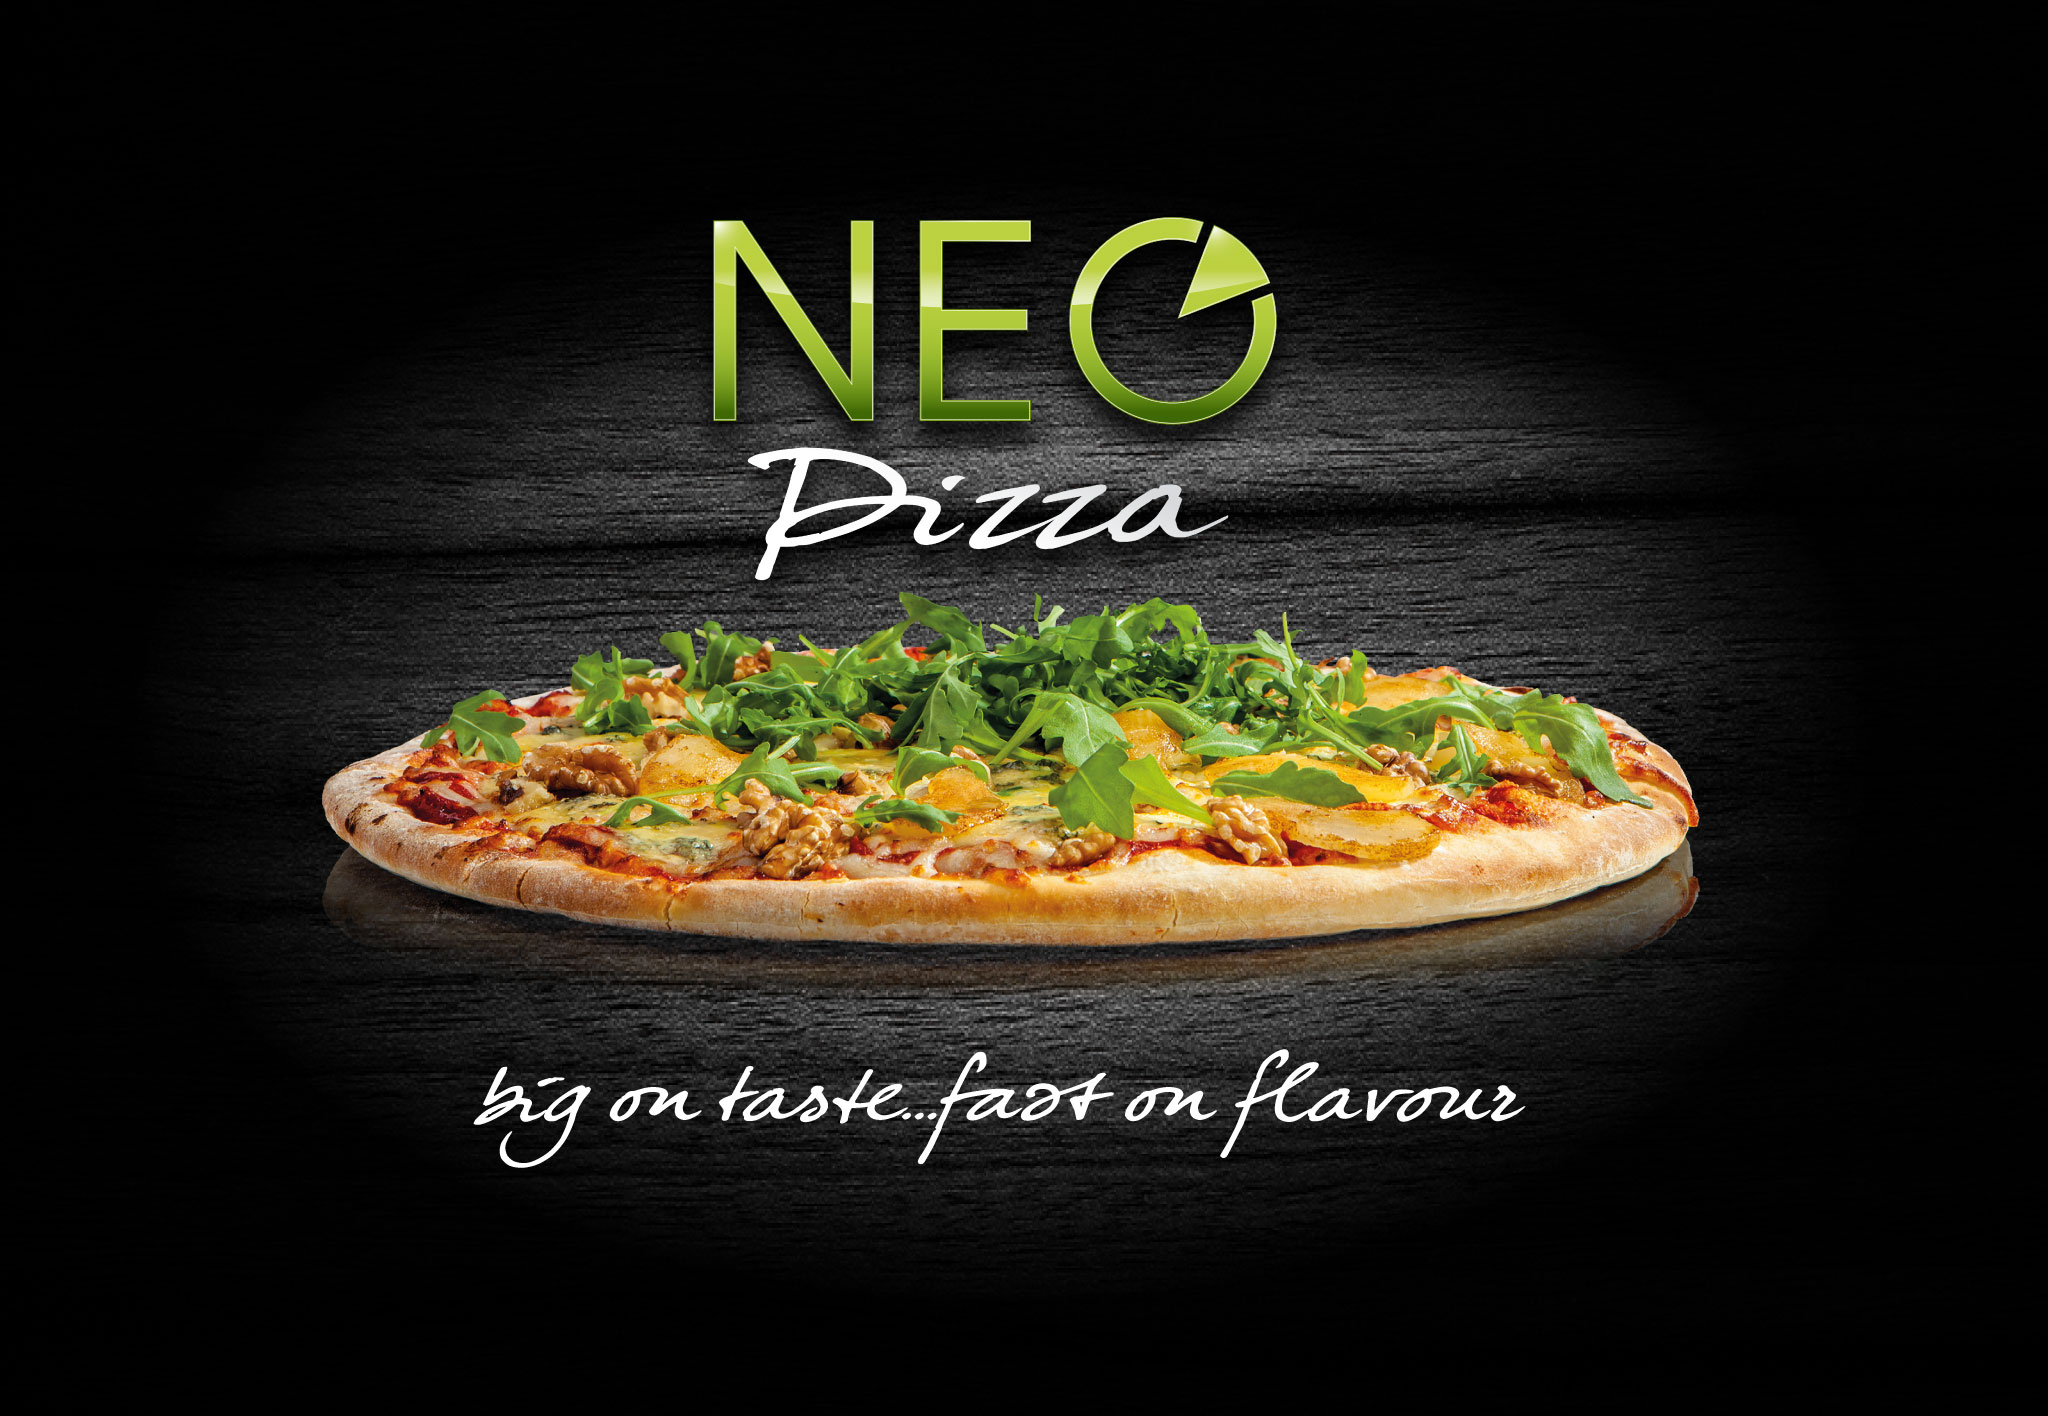 neo pizza branding big on taste